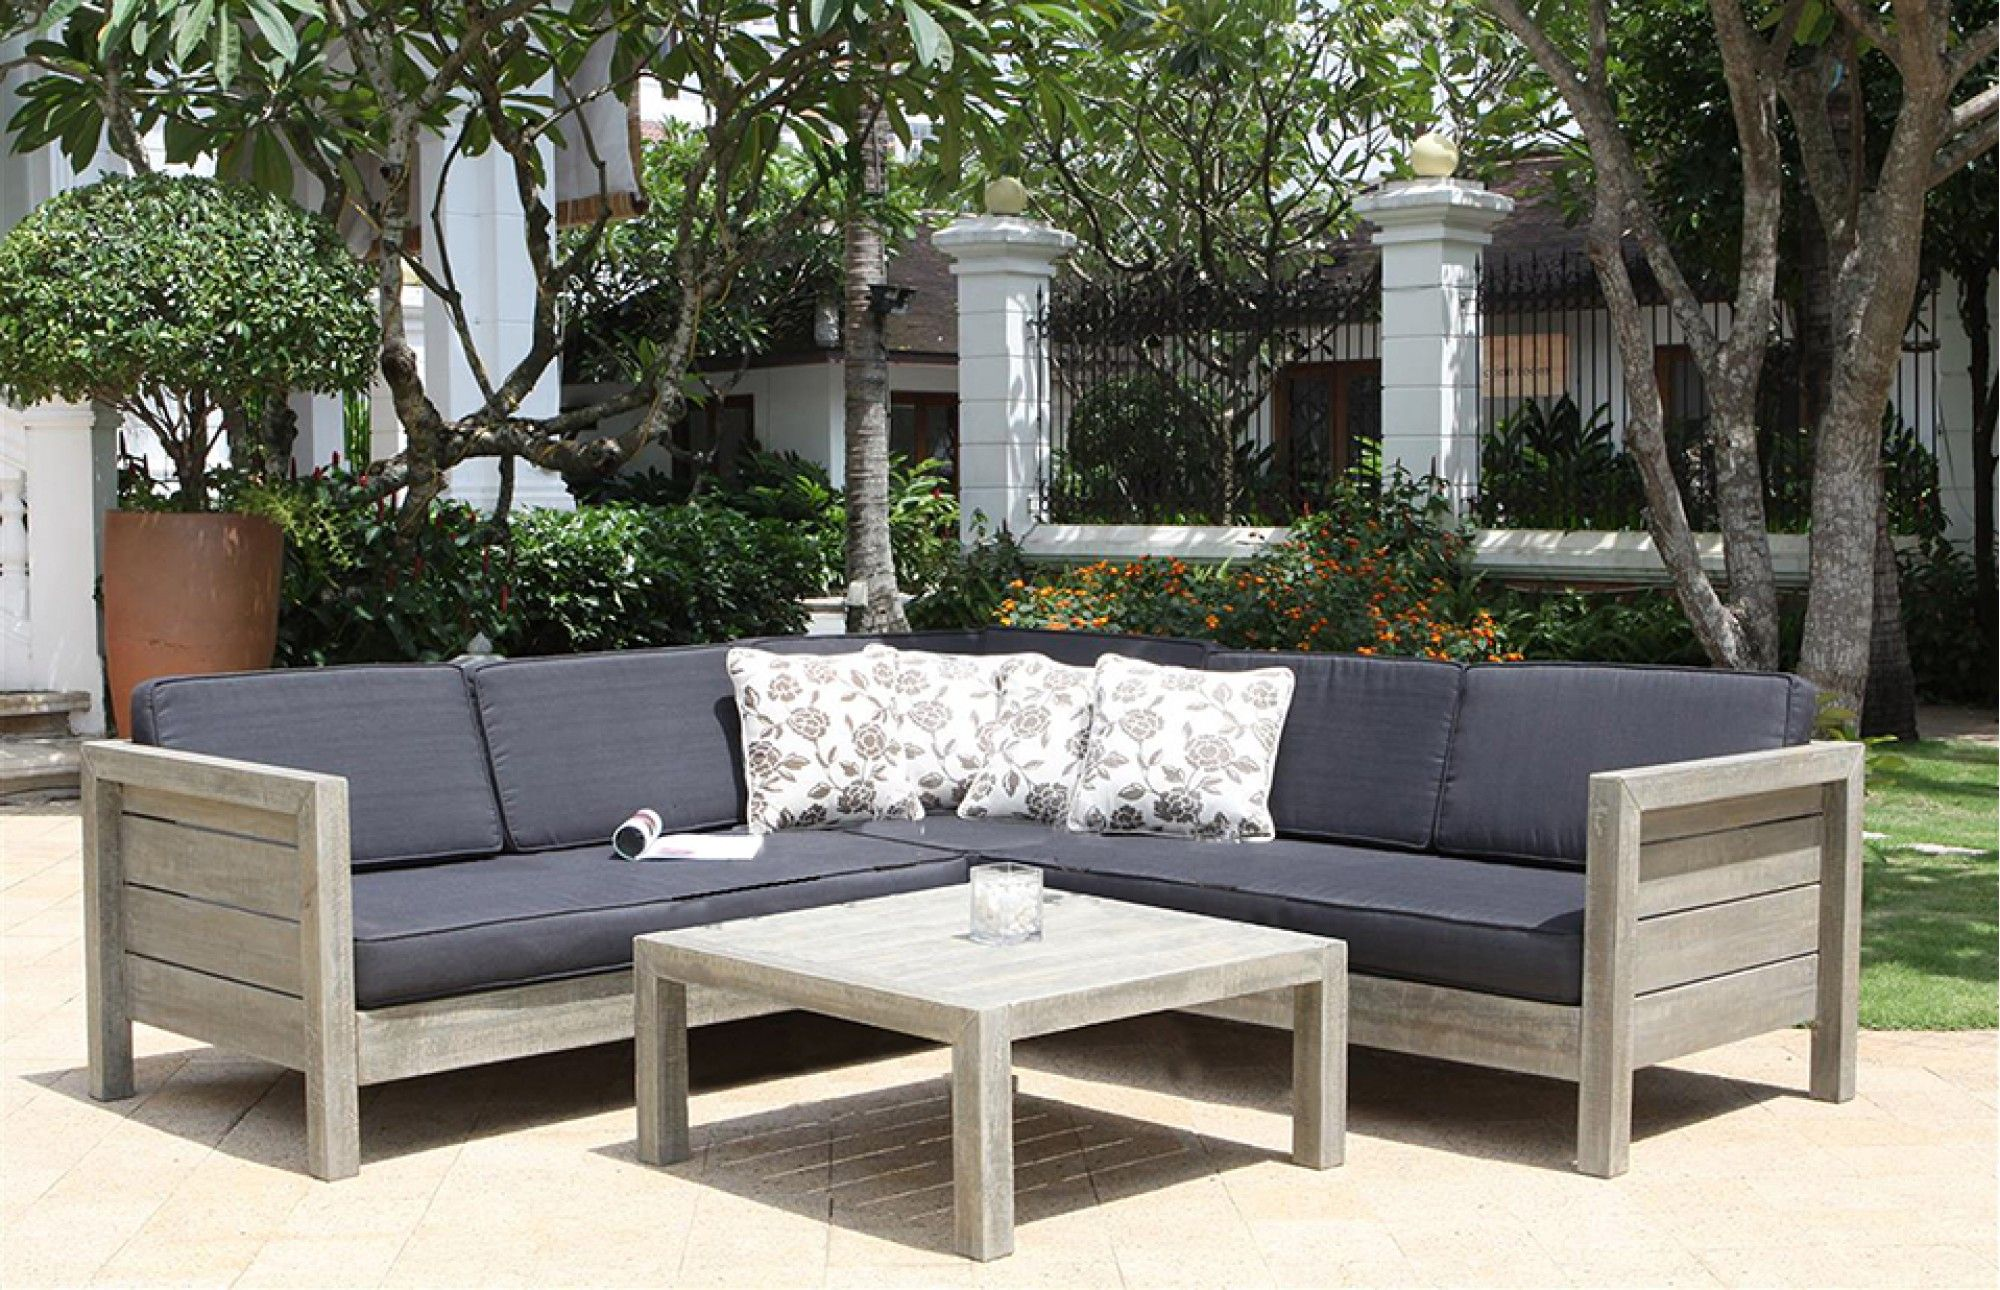 Lodge Garden Sofa Set